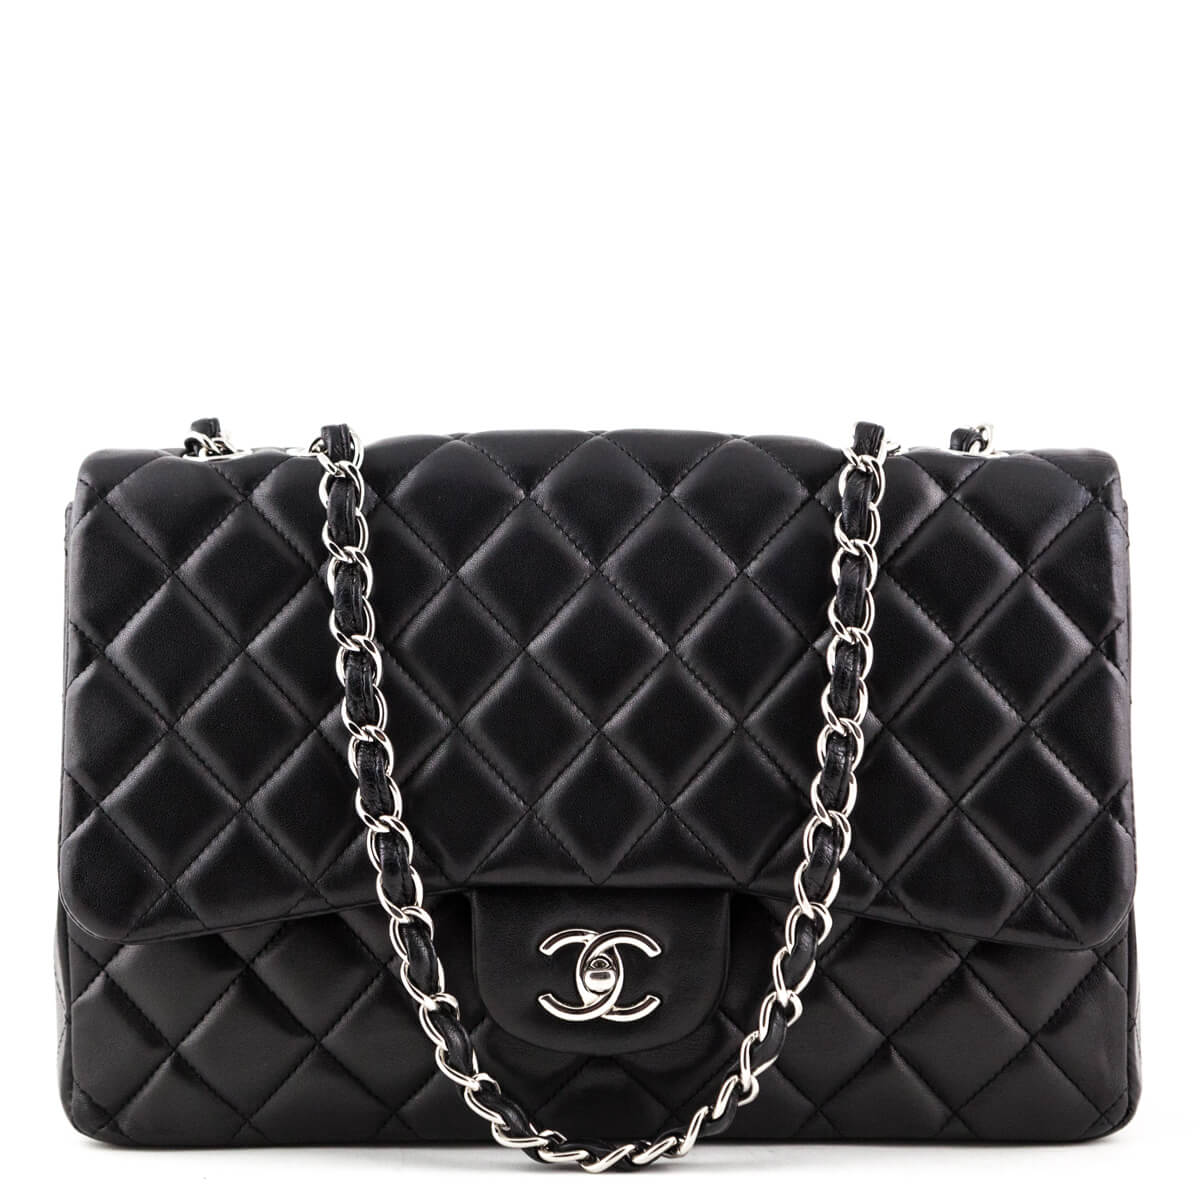 c5d1b0b36a55 Chanel Black Lambskin Jumbo Classic Single Flap Bag SHW - LOVE that BAG -  Preowned Authentic ...